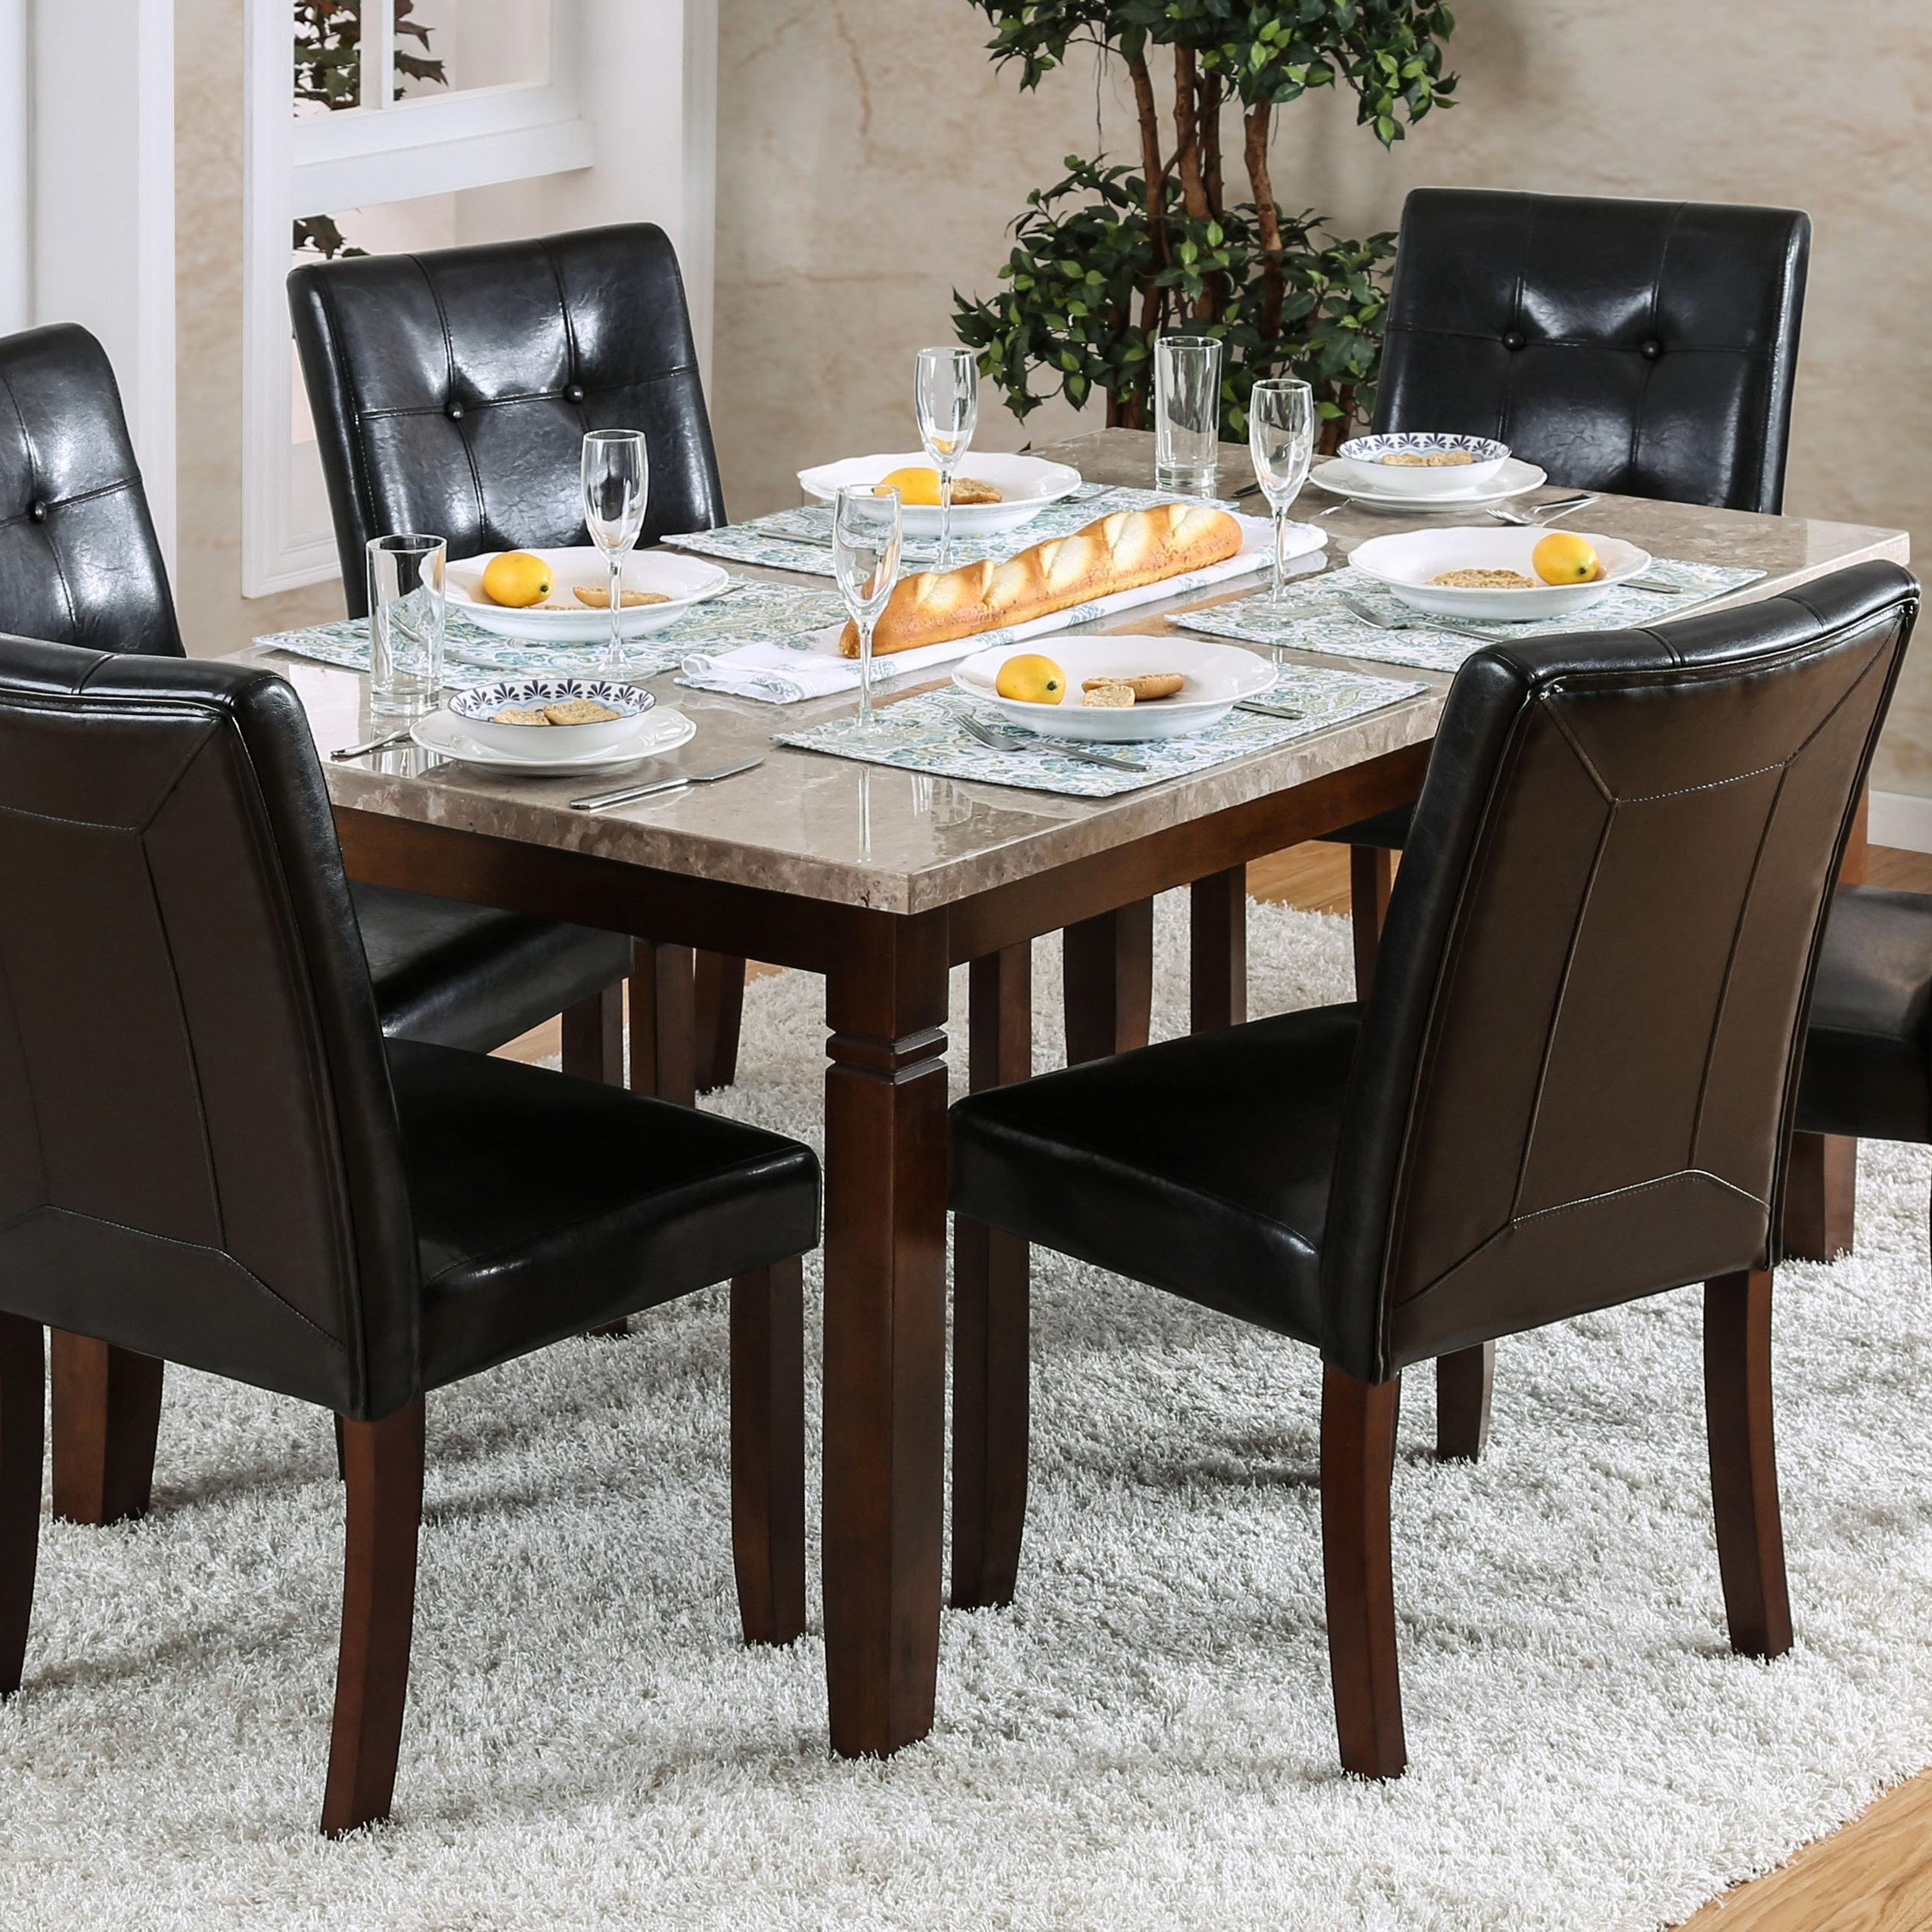 Red Barrel Studio Gibbons 7 Piece Dining Set | Wayfair For Most Current Candice Ii 7 Piece Extension Rectangular Dining Sets With Uph Side Chairs (Photo 4 of 20)